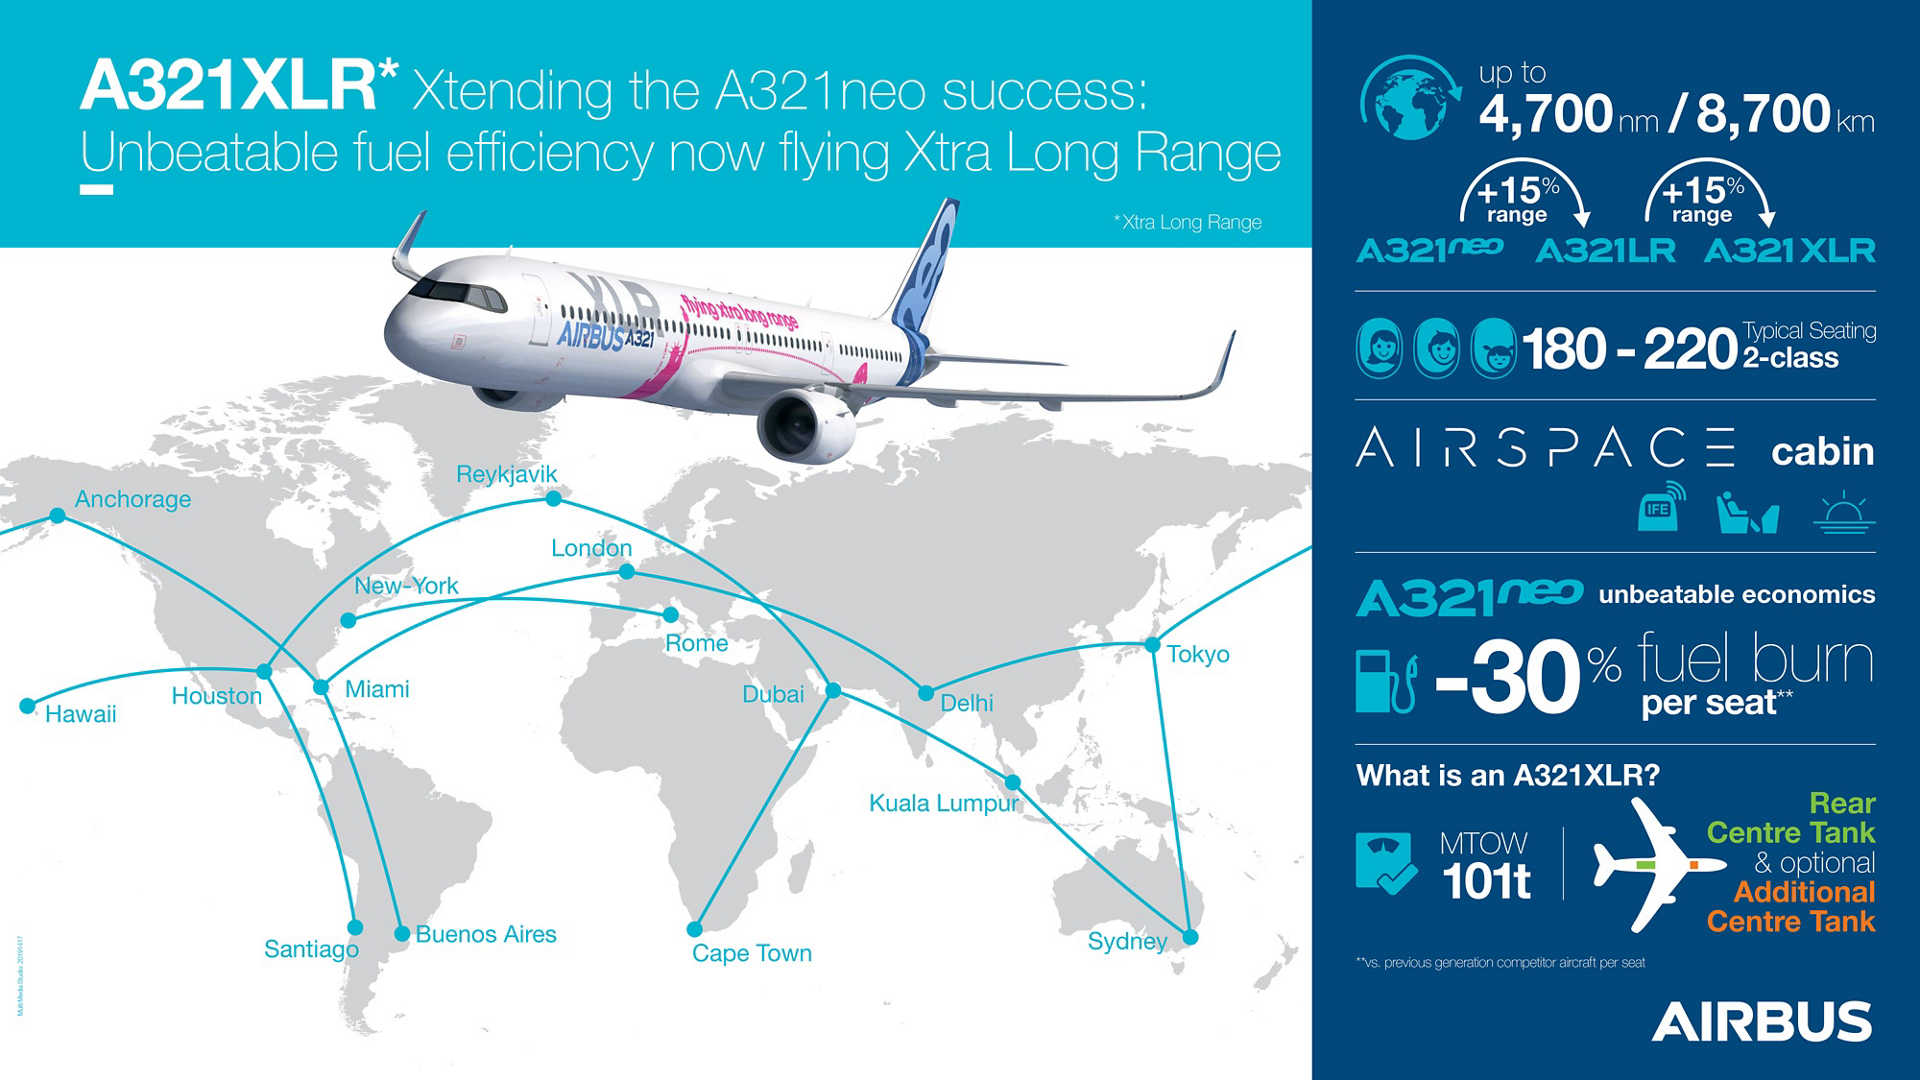 Airbus' A321XLR has been designed to maximize overall commonality with the A321LR version, while introducing minimal changes needed to give the aircraft an Xtra Long Range with increased revenue payload